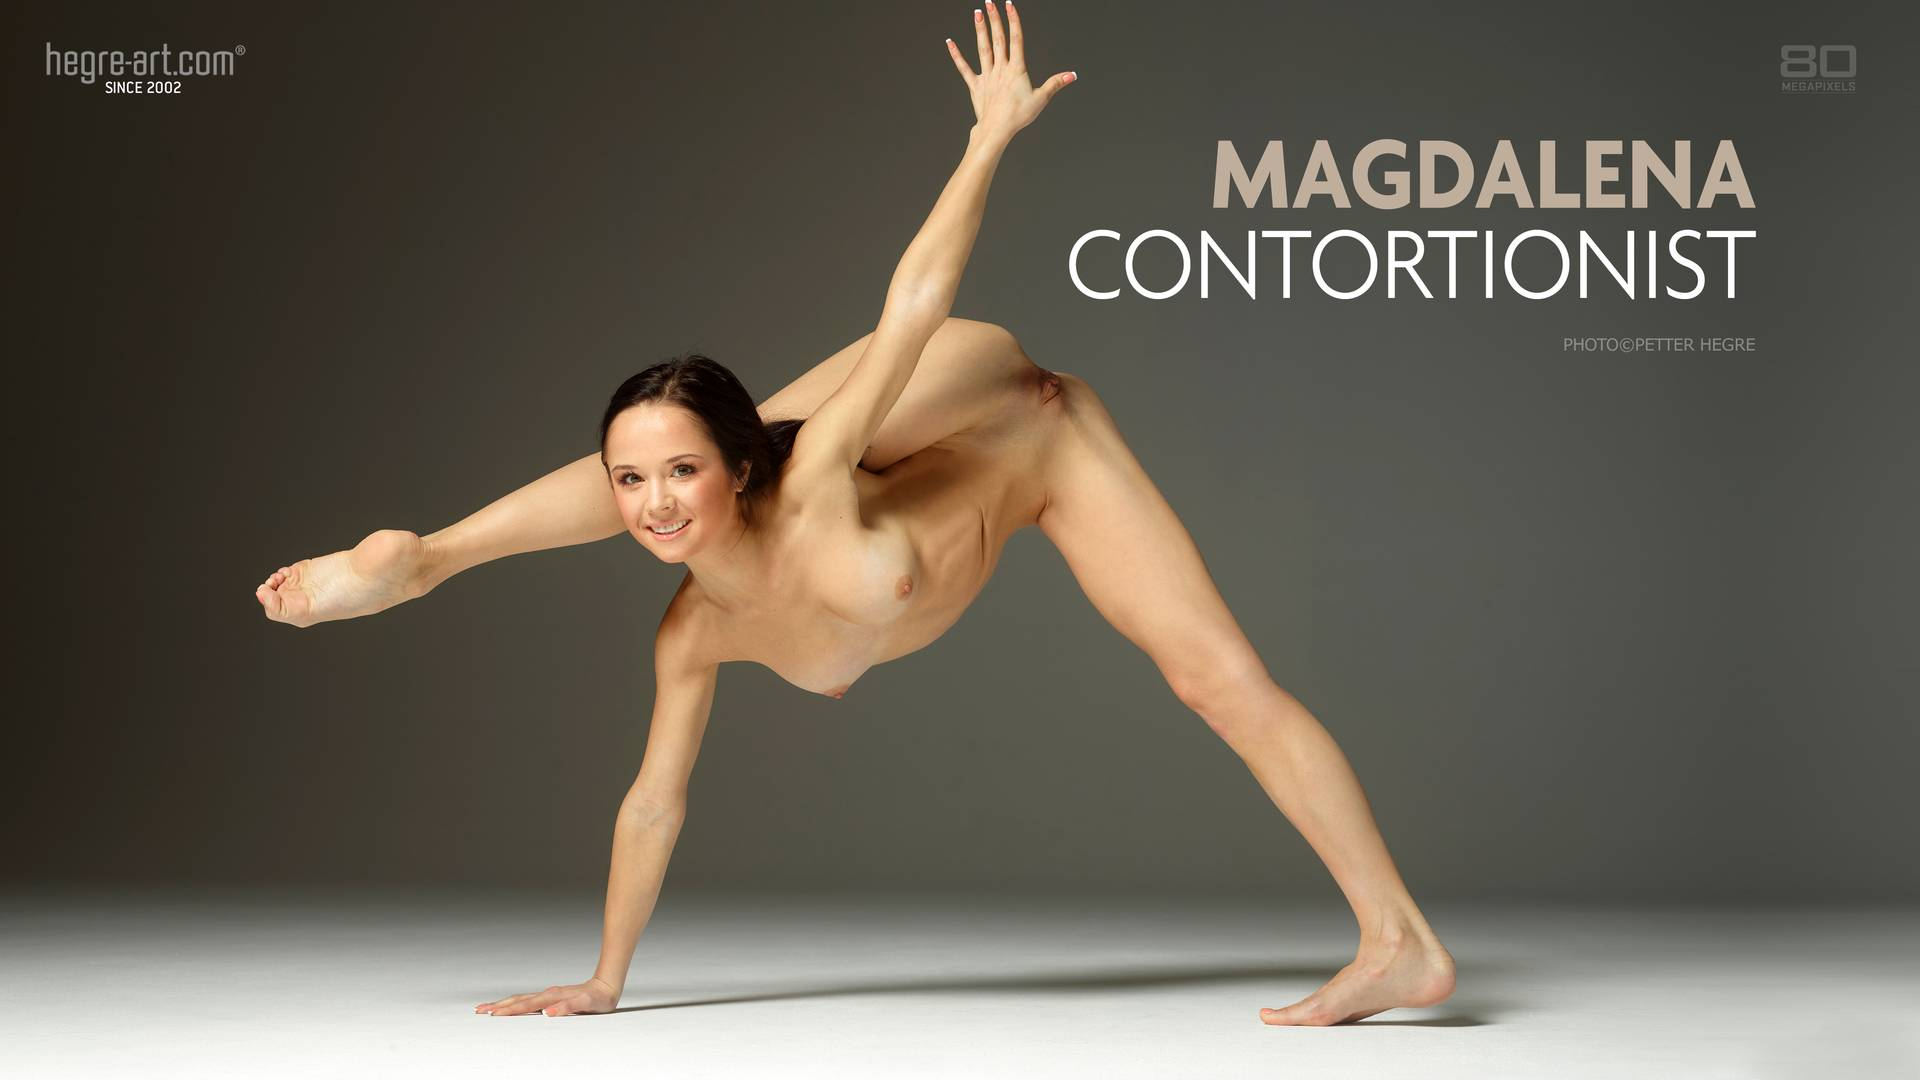 magdalena-contortionist-board-image-1920x